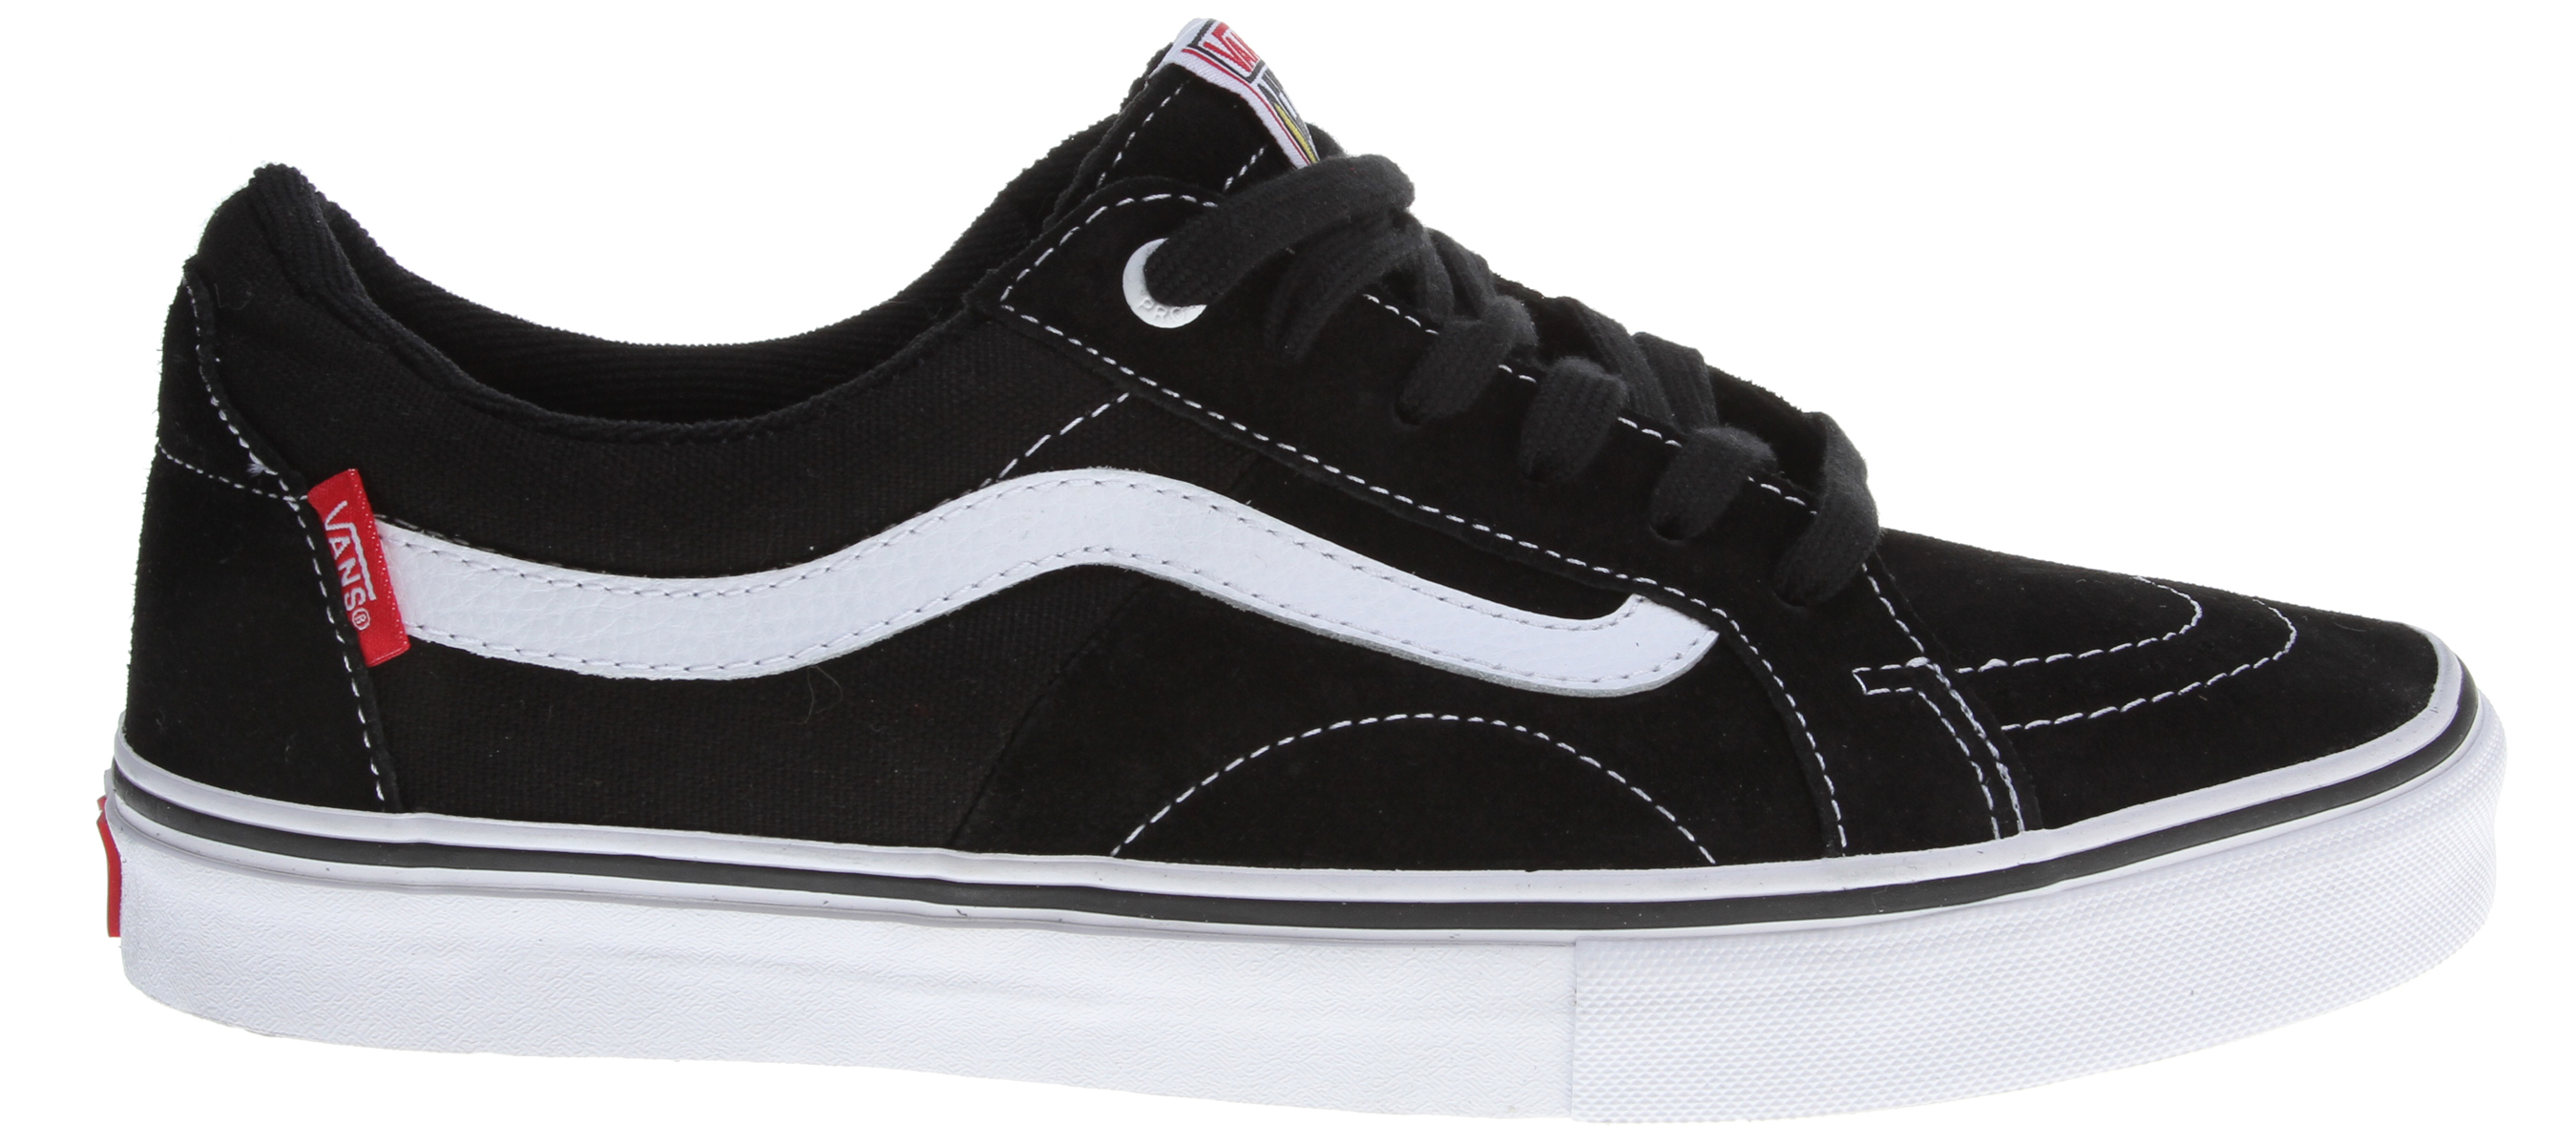 Skateboard Key Features of the Vans AV Native American Low Skate Shoes: PRO VULC Construction ORTHOLITE Cushioning Vans ORIGINAL WAFFLE Outsole FLEX & FIT Upper - $60.00